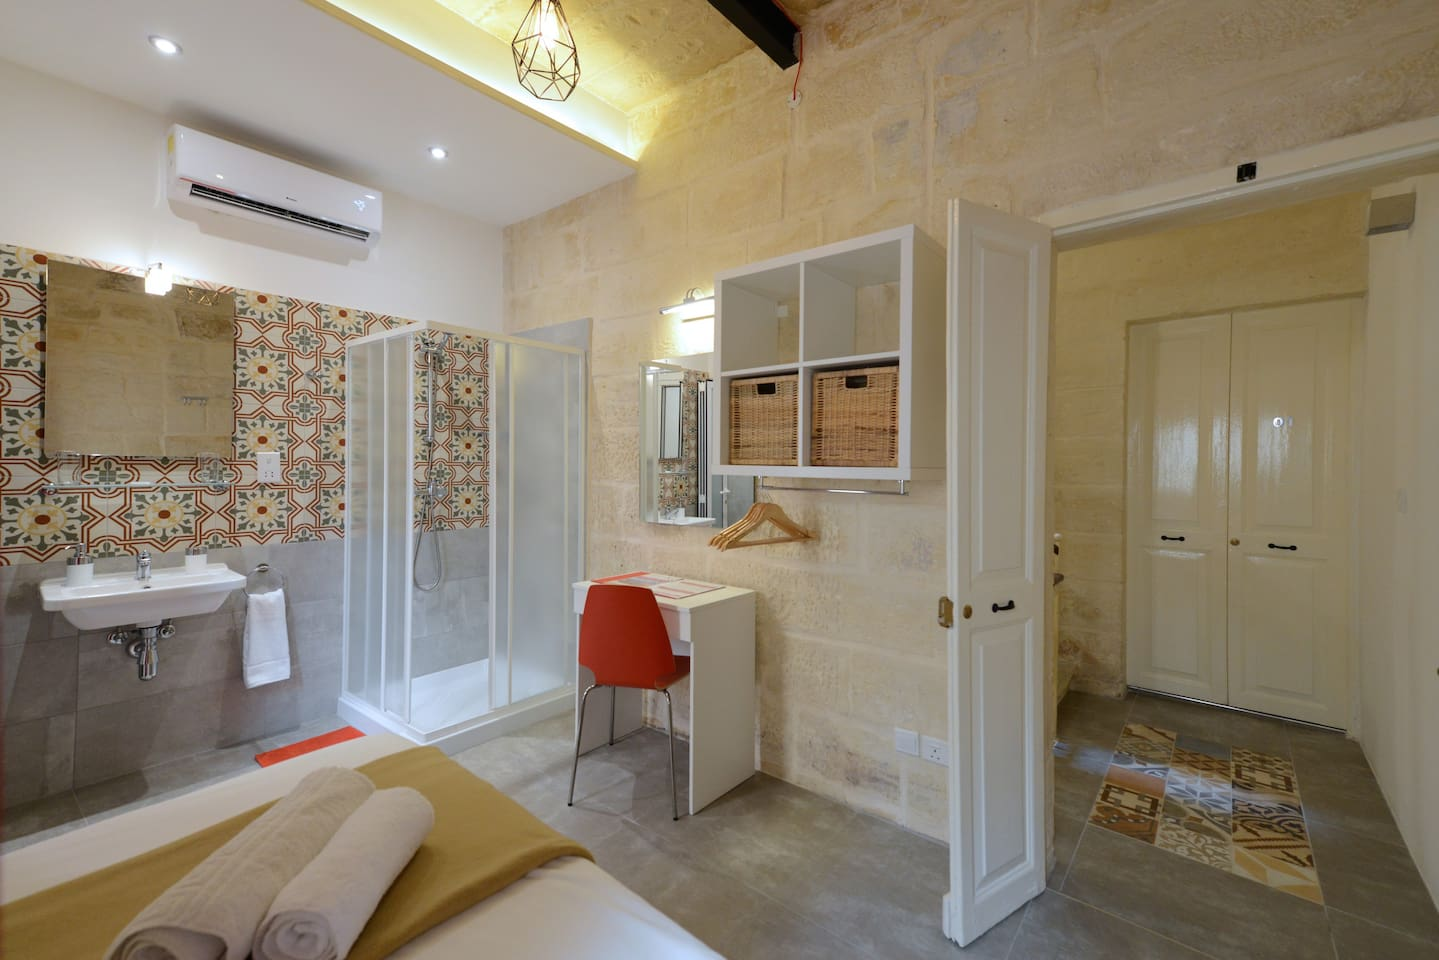 lovely house single studio with shared kitchen houses for rent in il belt valletta malta - Shared Kitchen